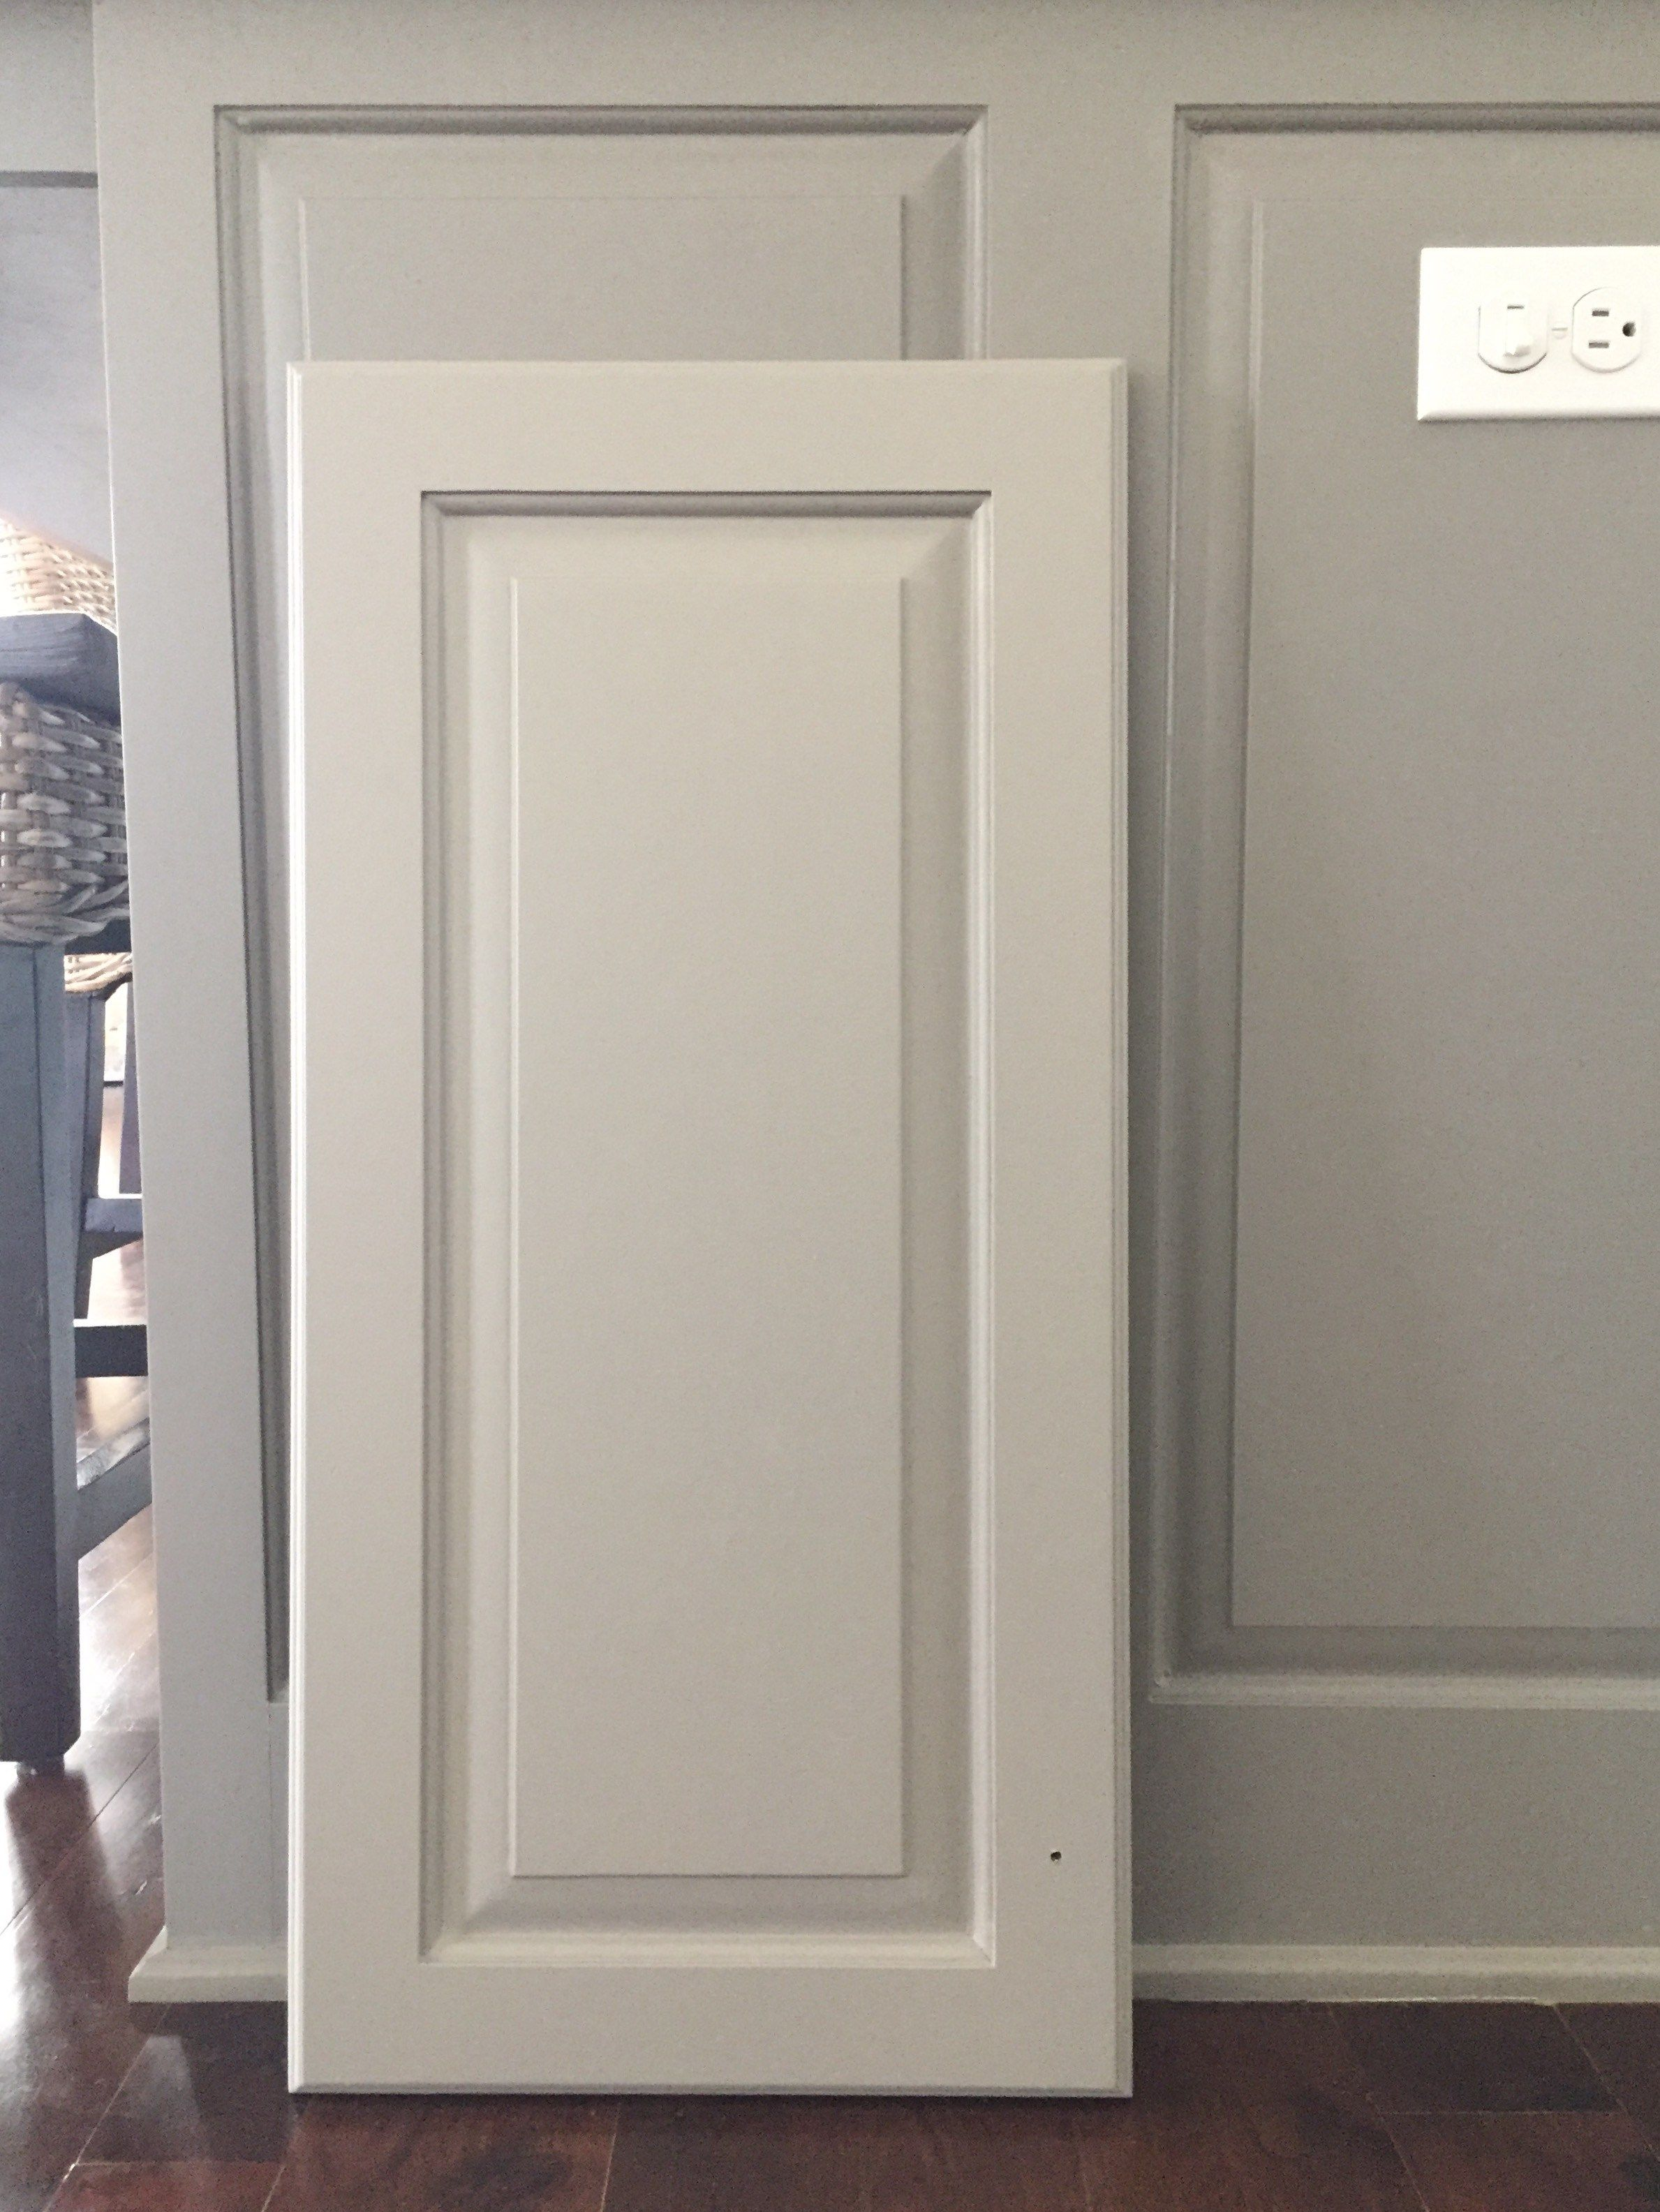 Image Result For Sherwin Williams Acier Dovetail Sherwin Williams Sherwin Williams Master Bath Remodel